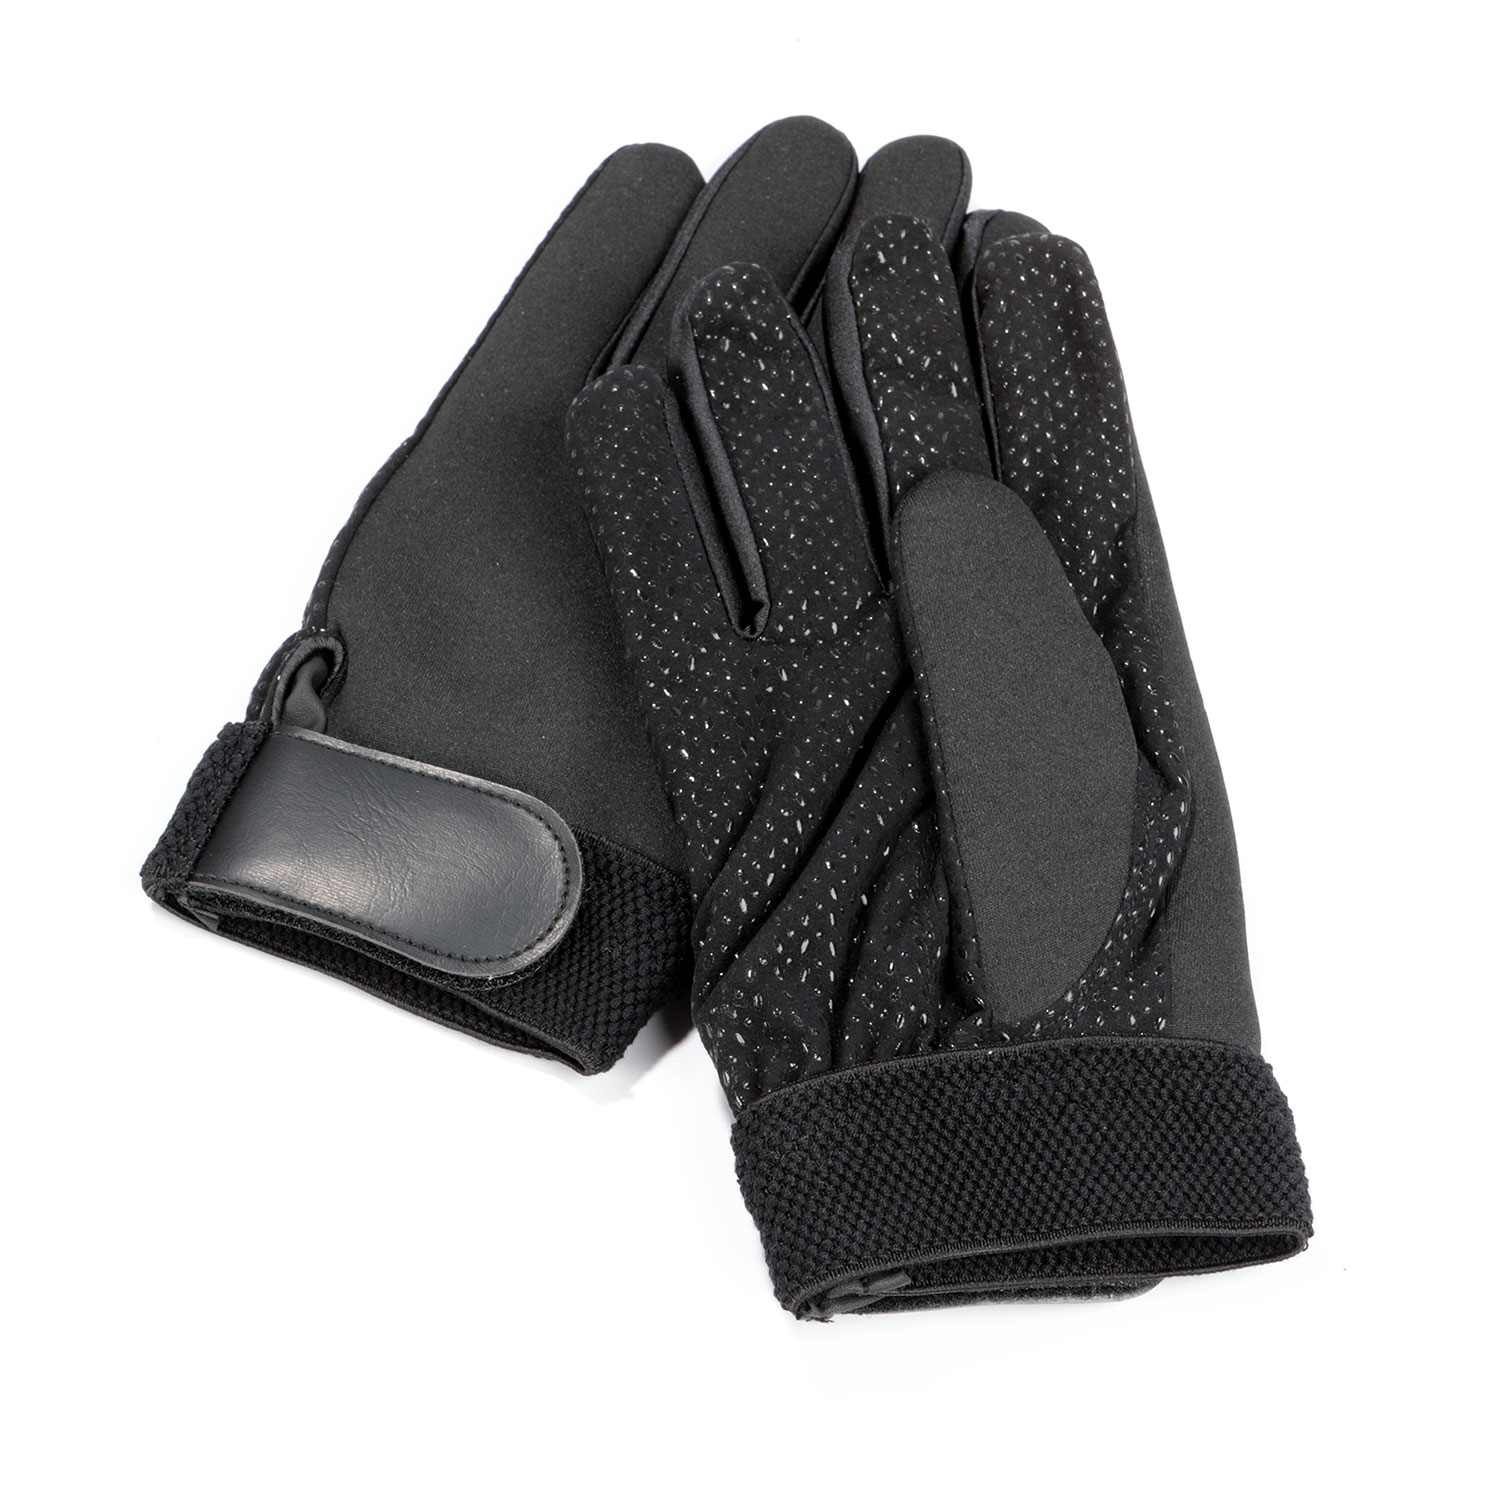 Active Sports Thinsulate Lined Aeroprene Gloves